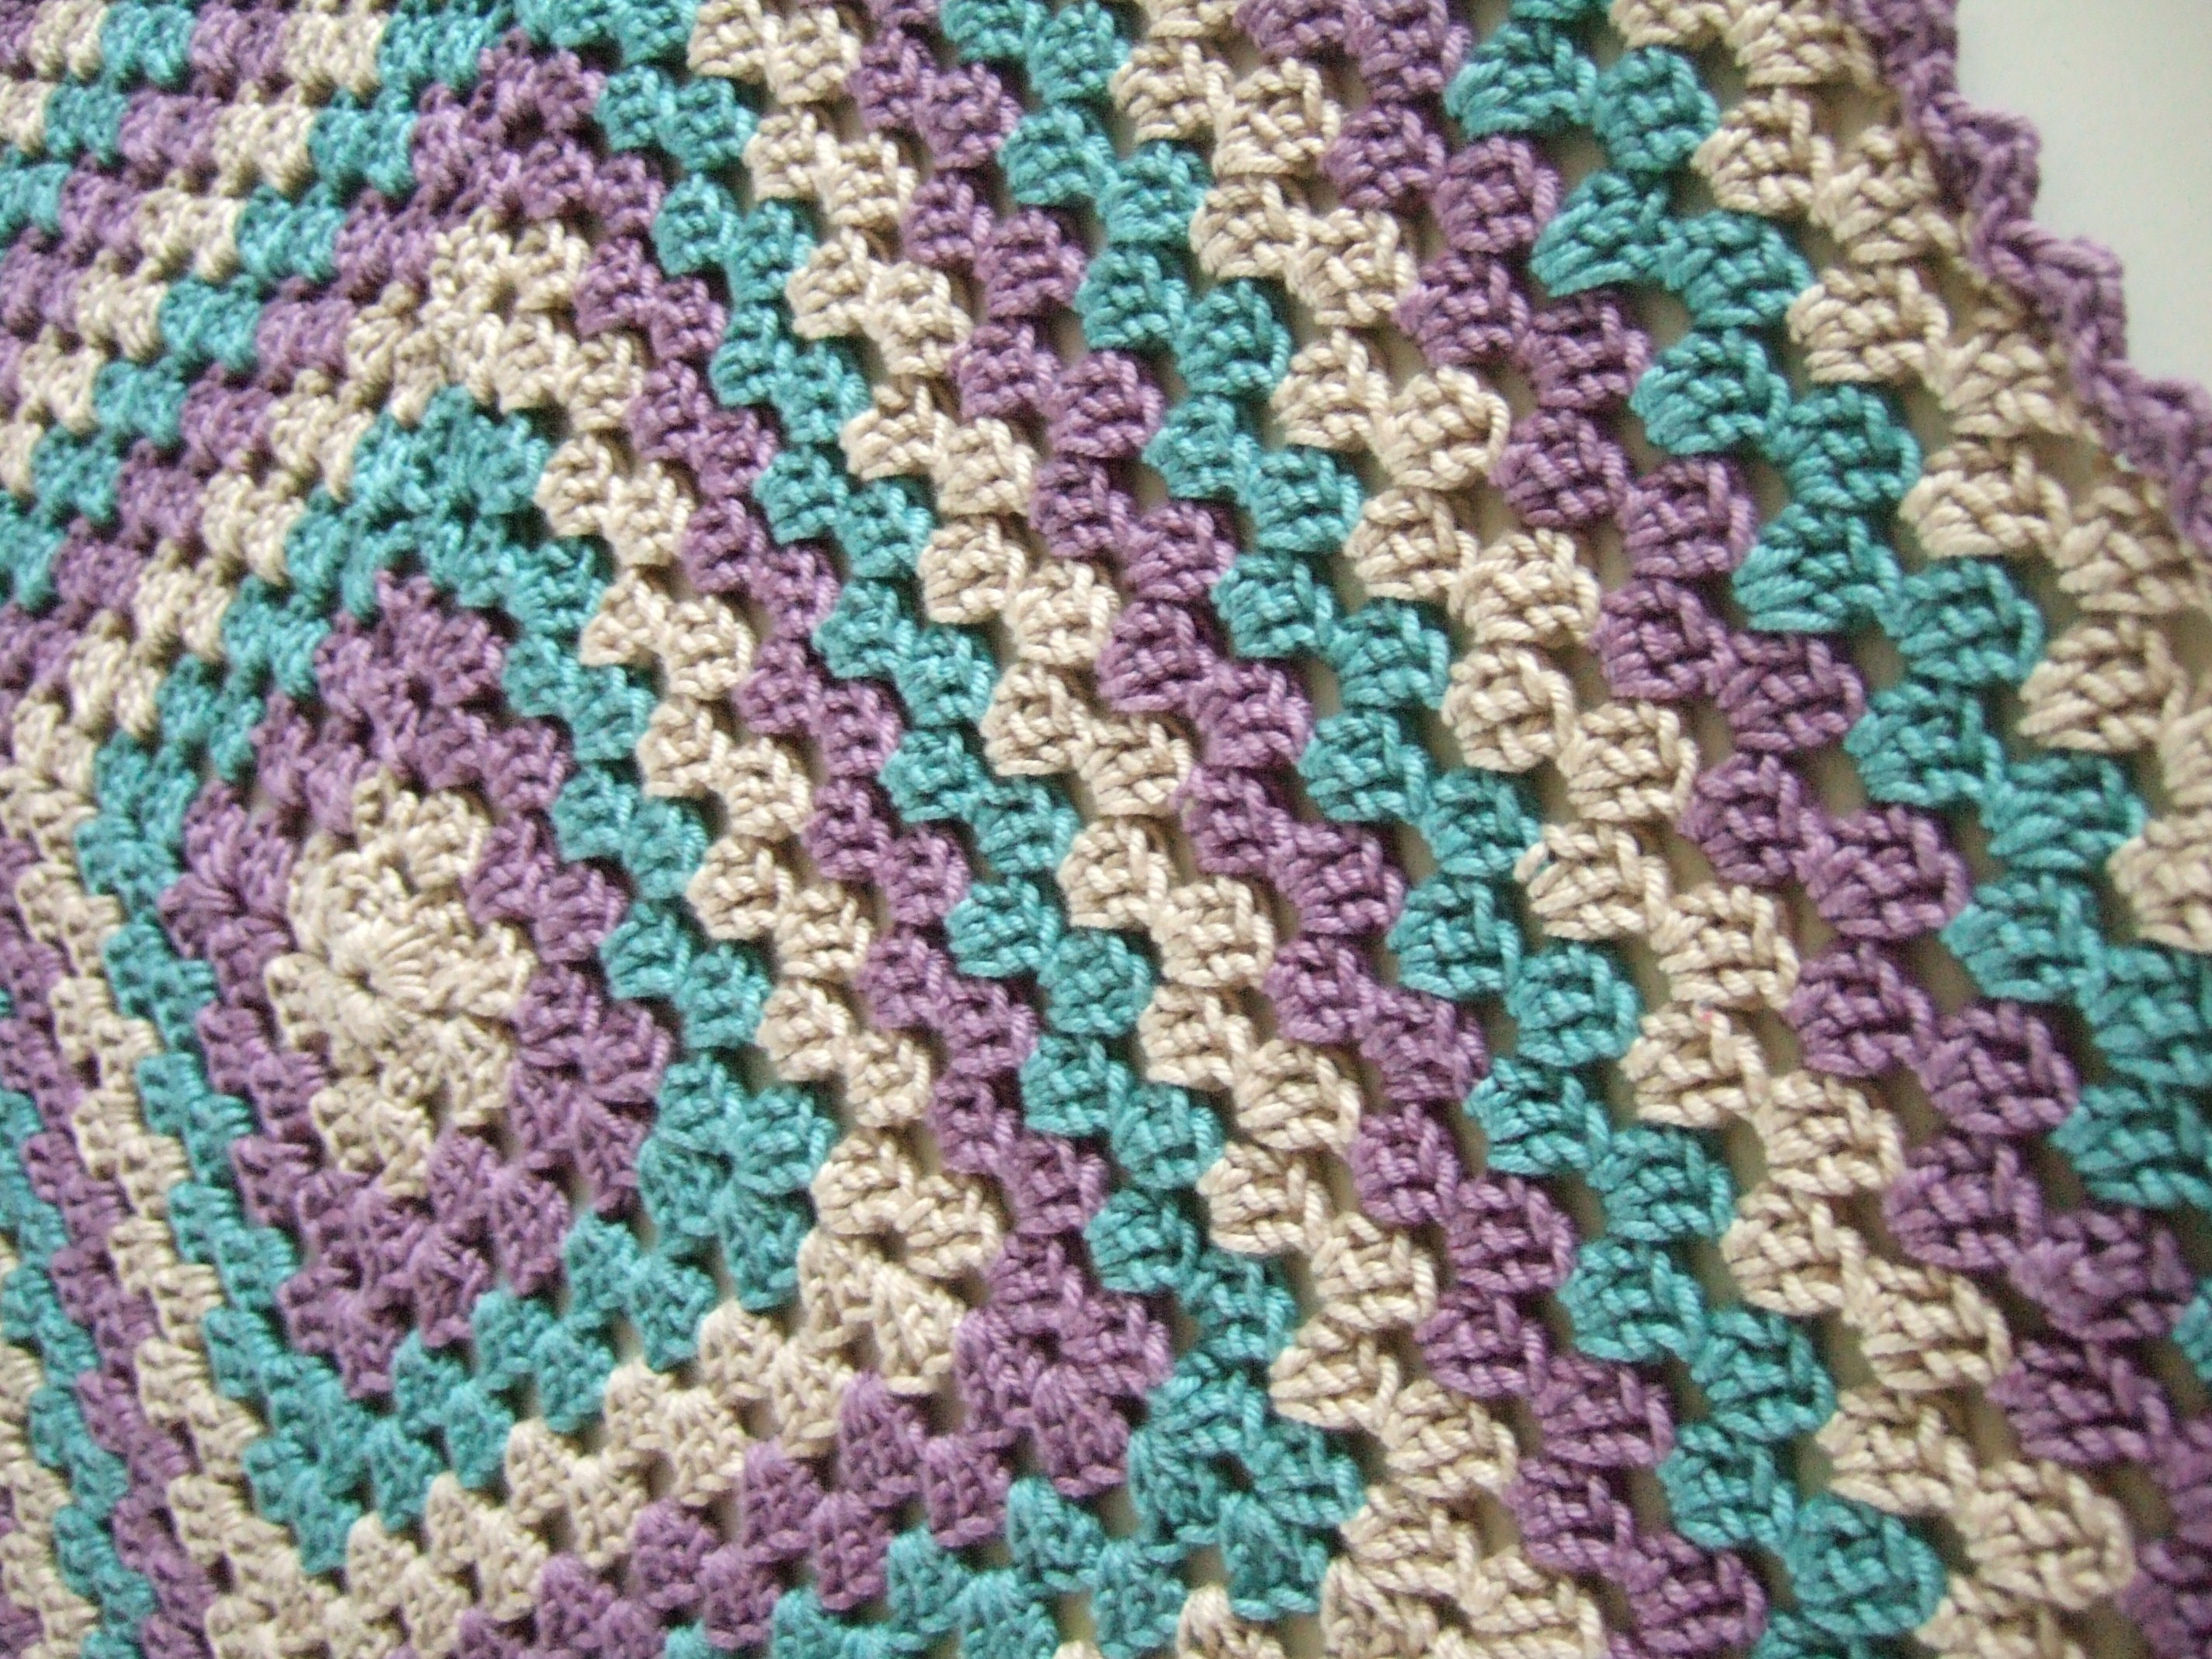 Easy Crochet Throw Patterns New Easy Crochet Baby Blanket Patterns for Beginners Of New 47 Pictures Easy Crochet Throw Patterns